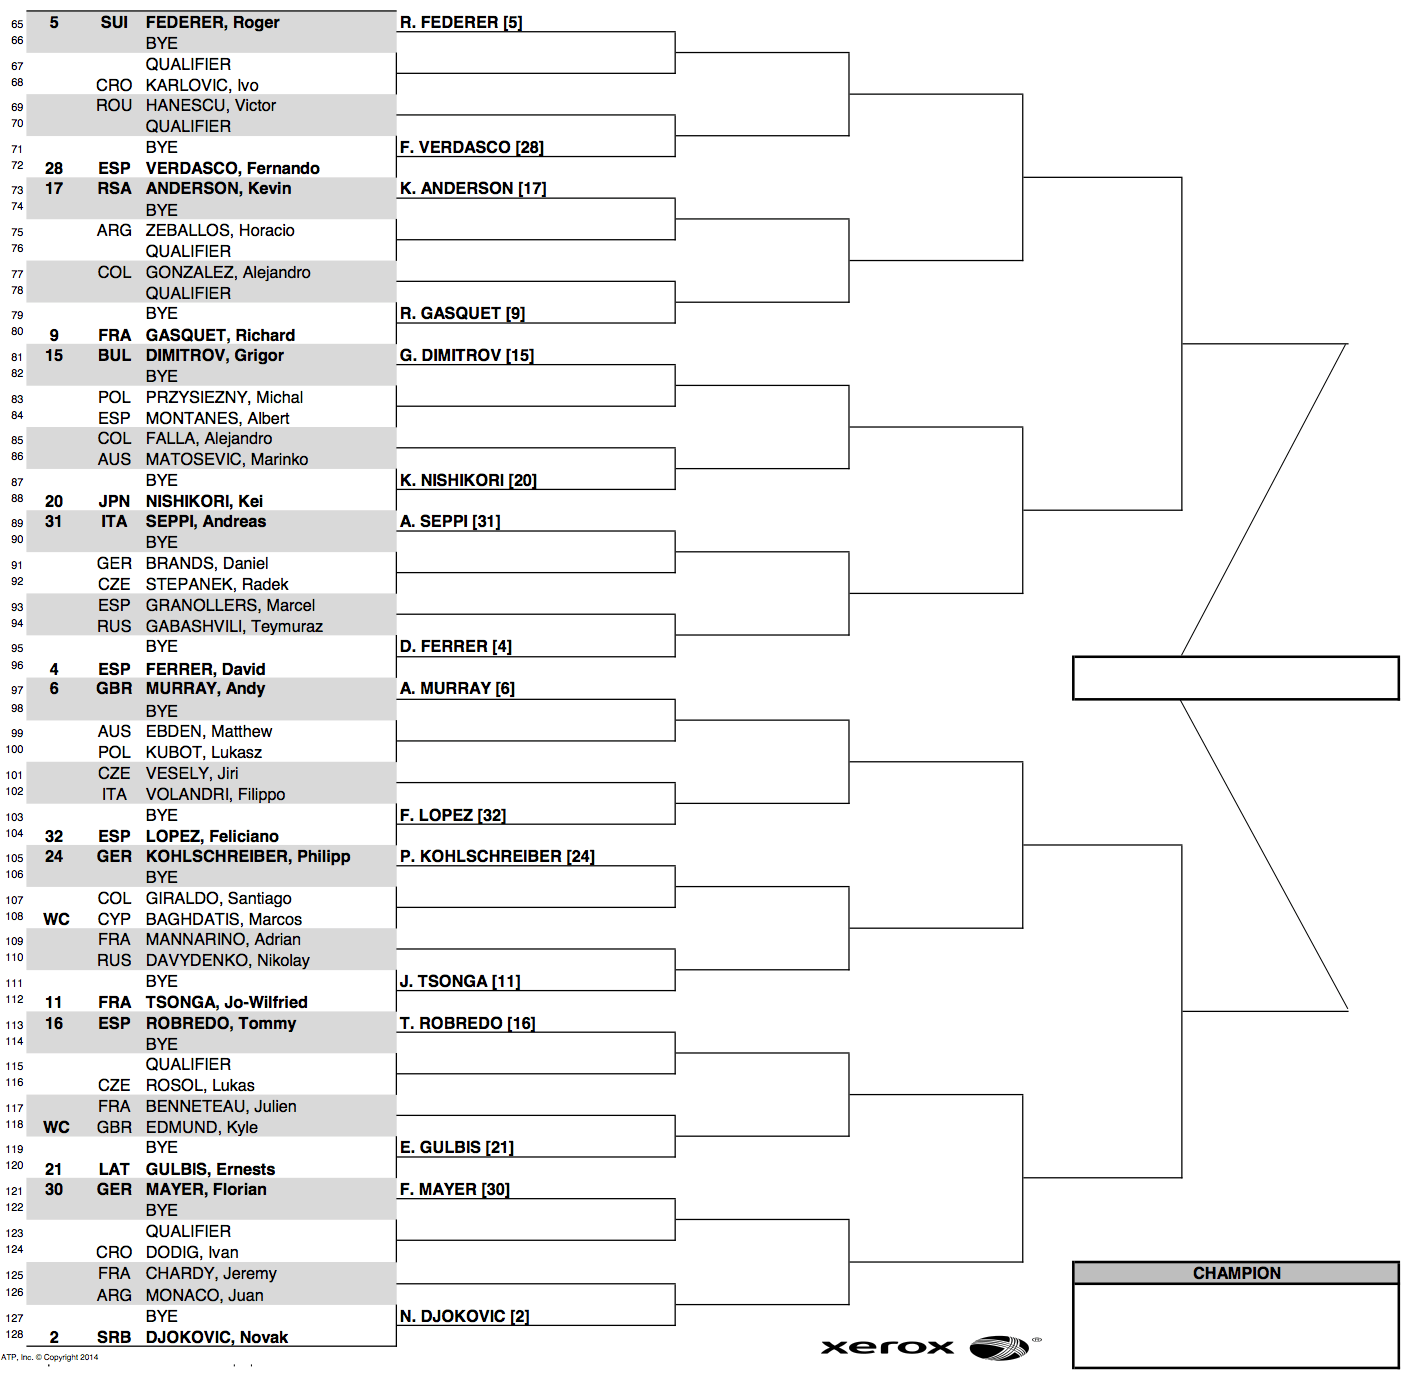 Sony Open 2014 draw 2:2